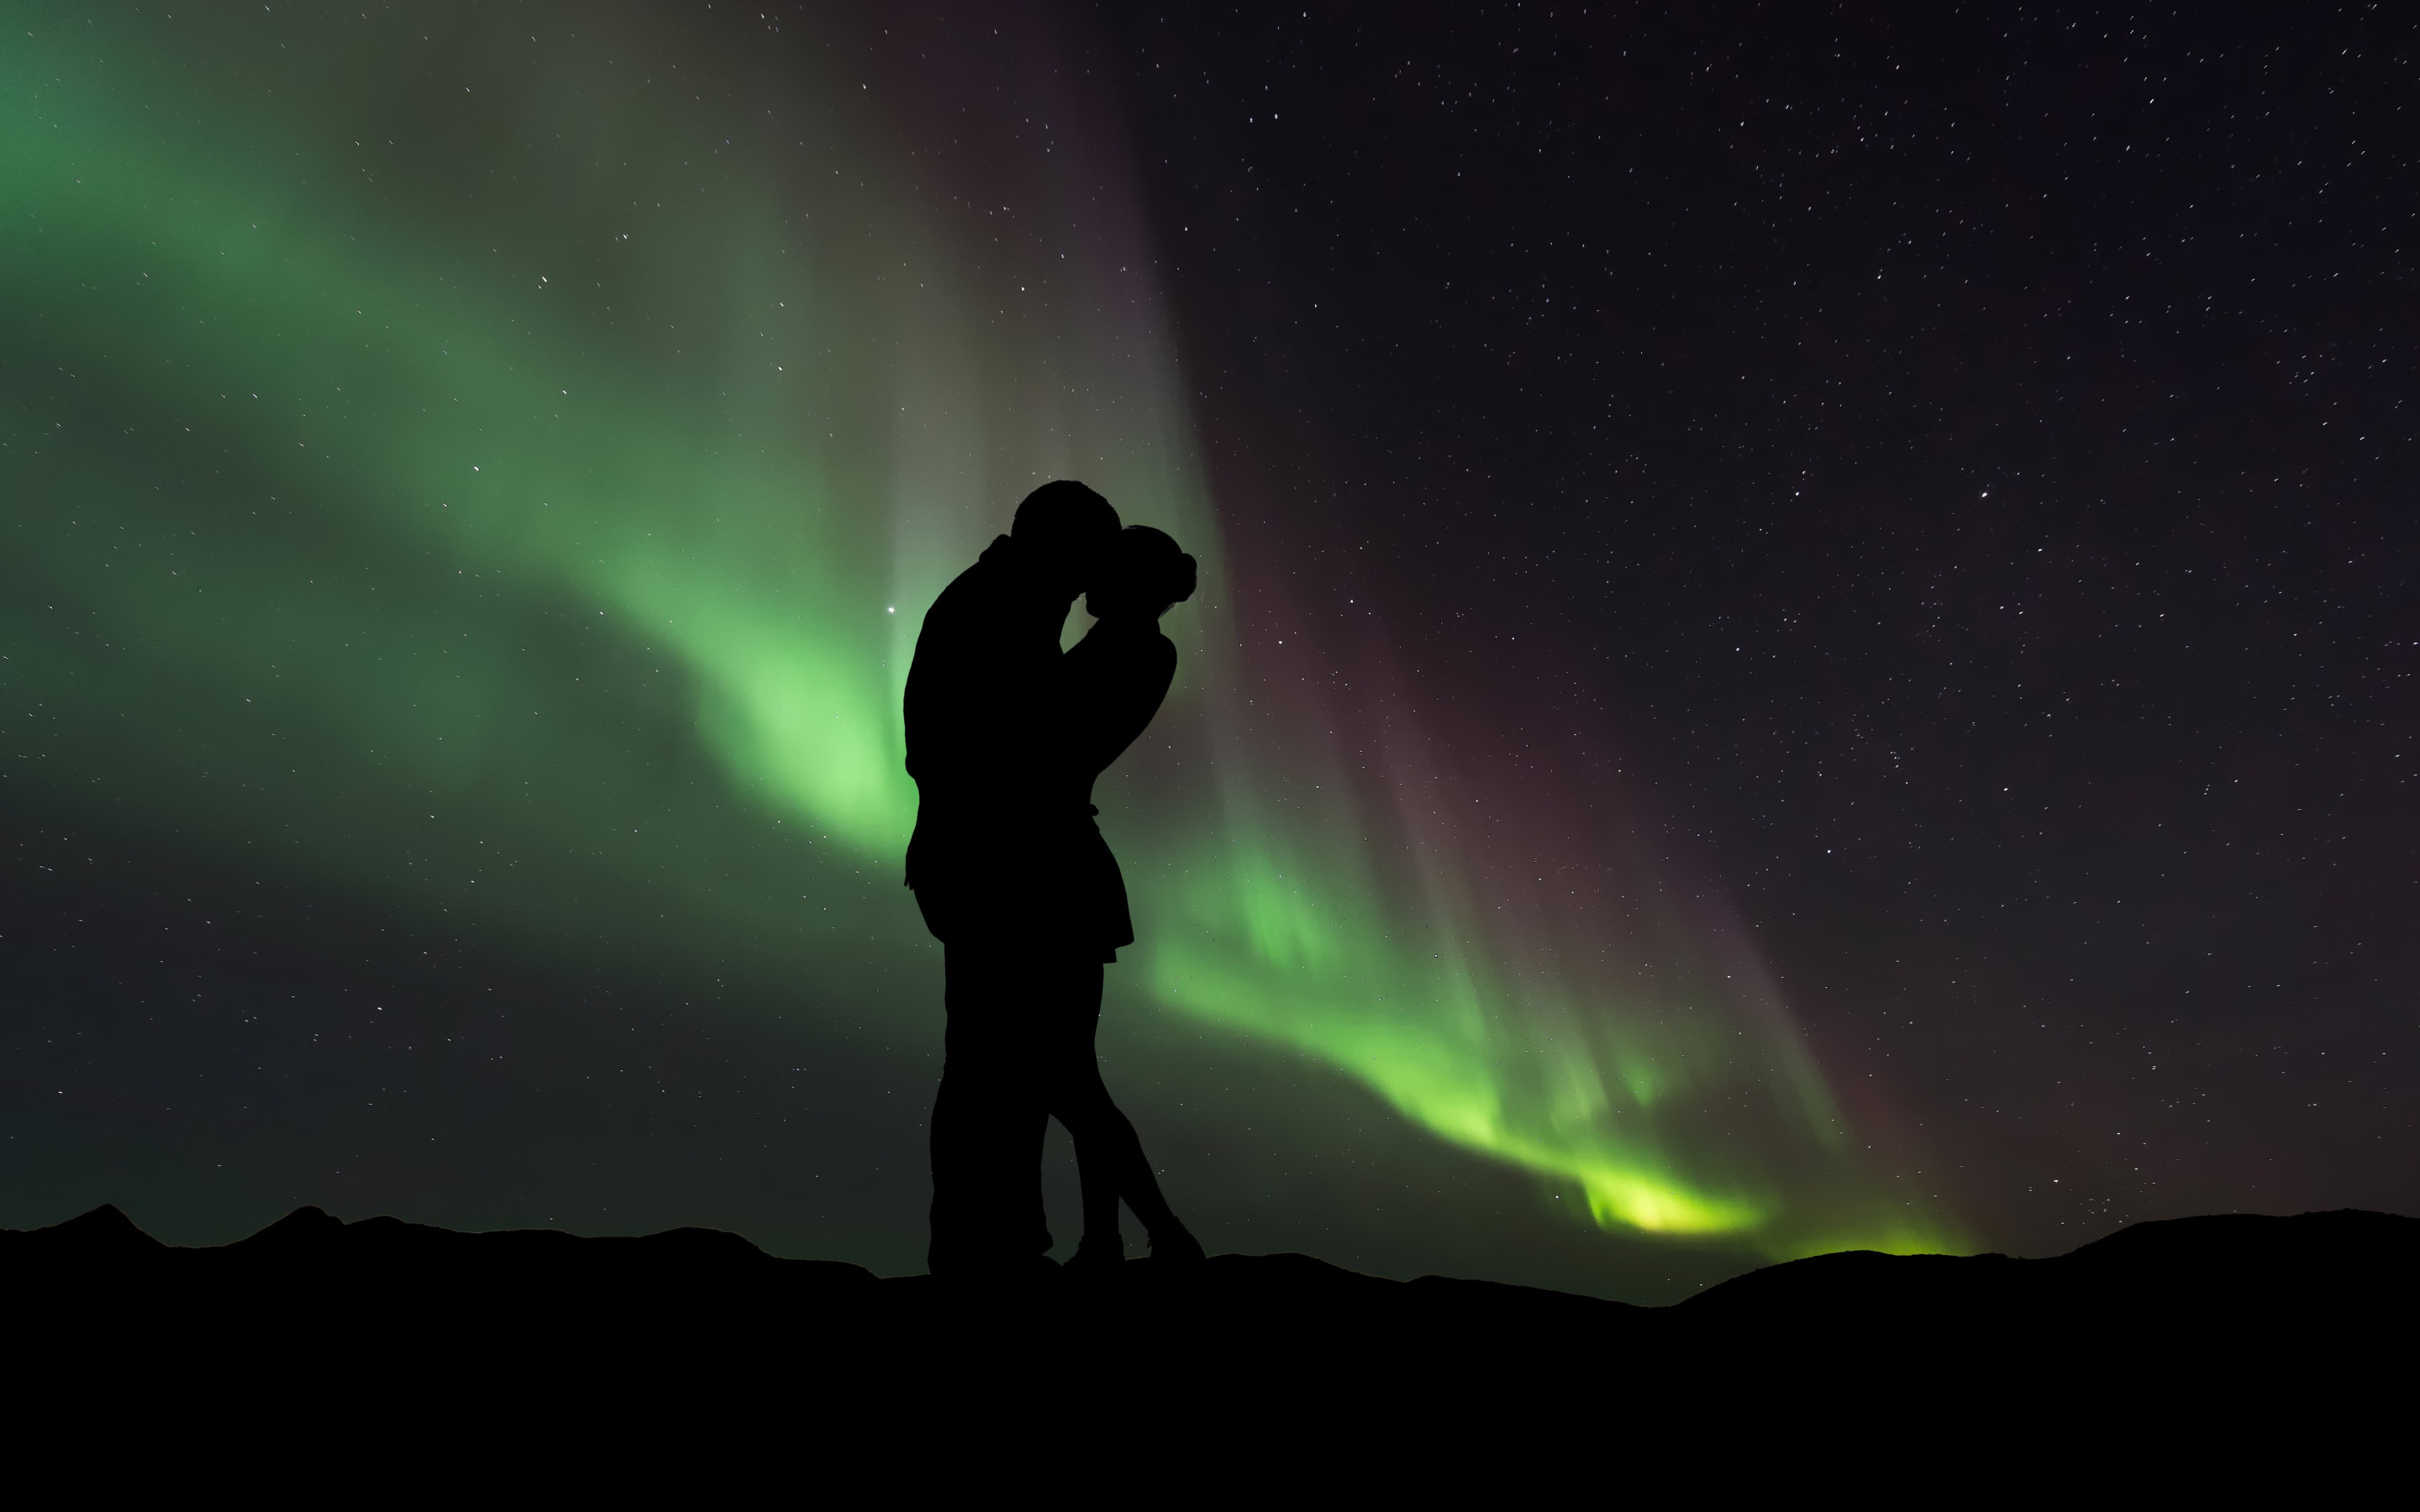 Couple in love under the Northern Lights wallpaper 2880x1800